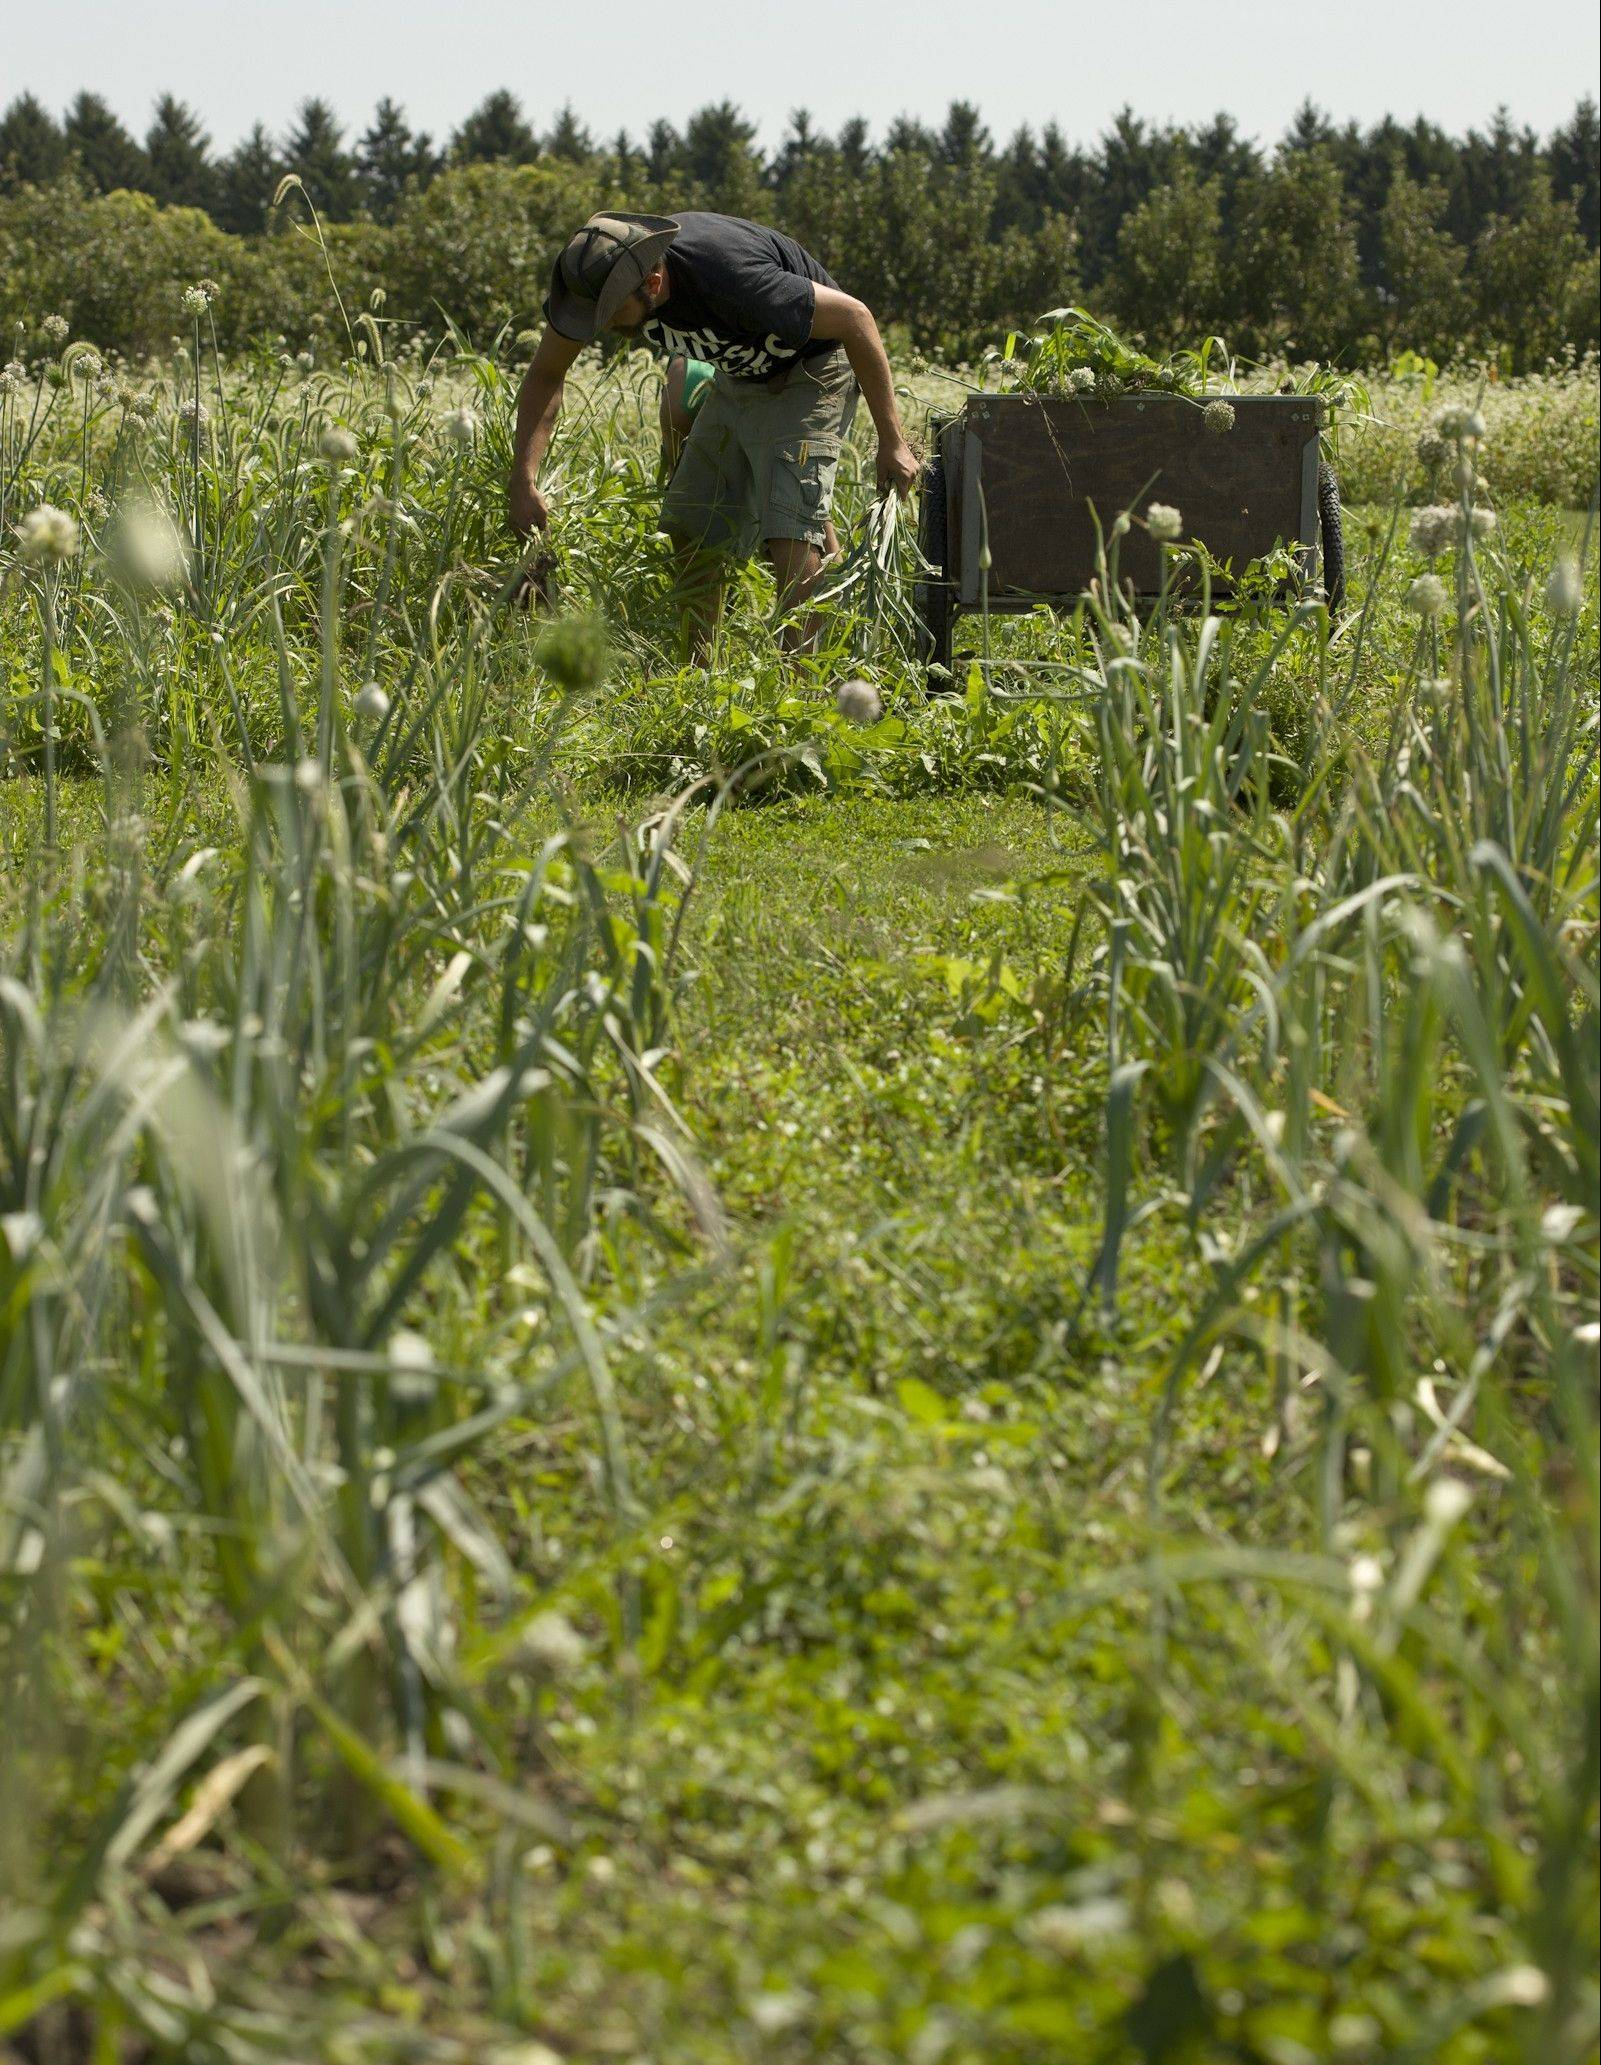 A Big Bowl employee harvests onions at Heritage Prairie Farm. The onions were used hours later for dinner.